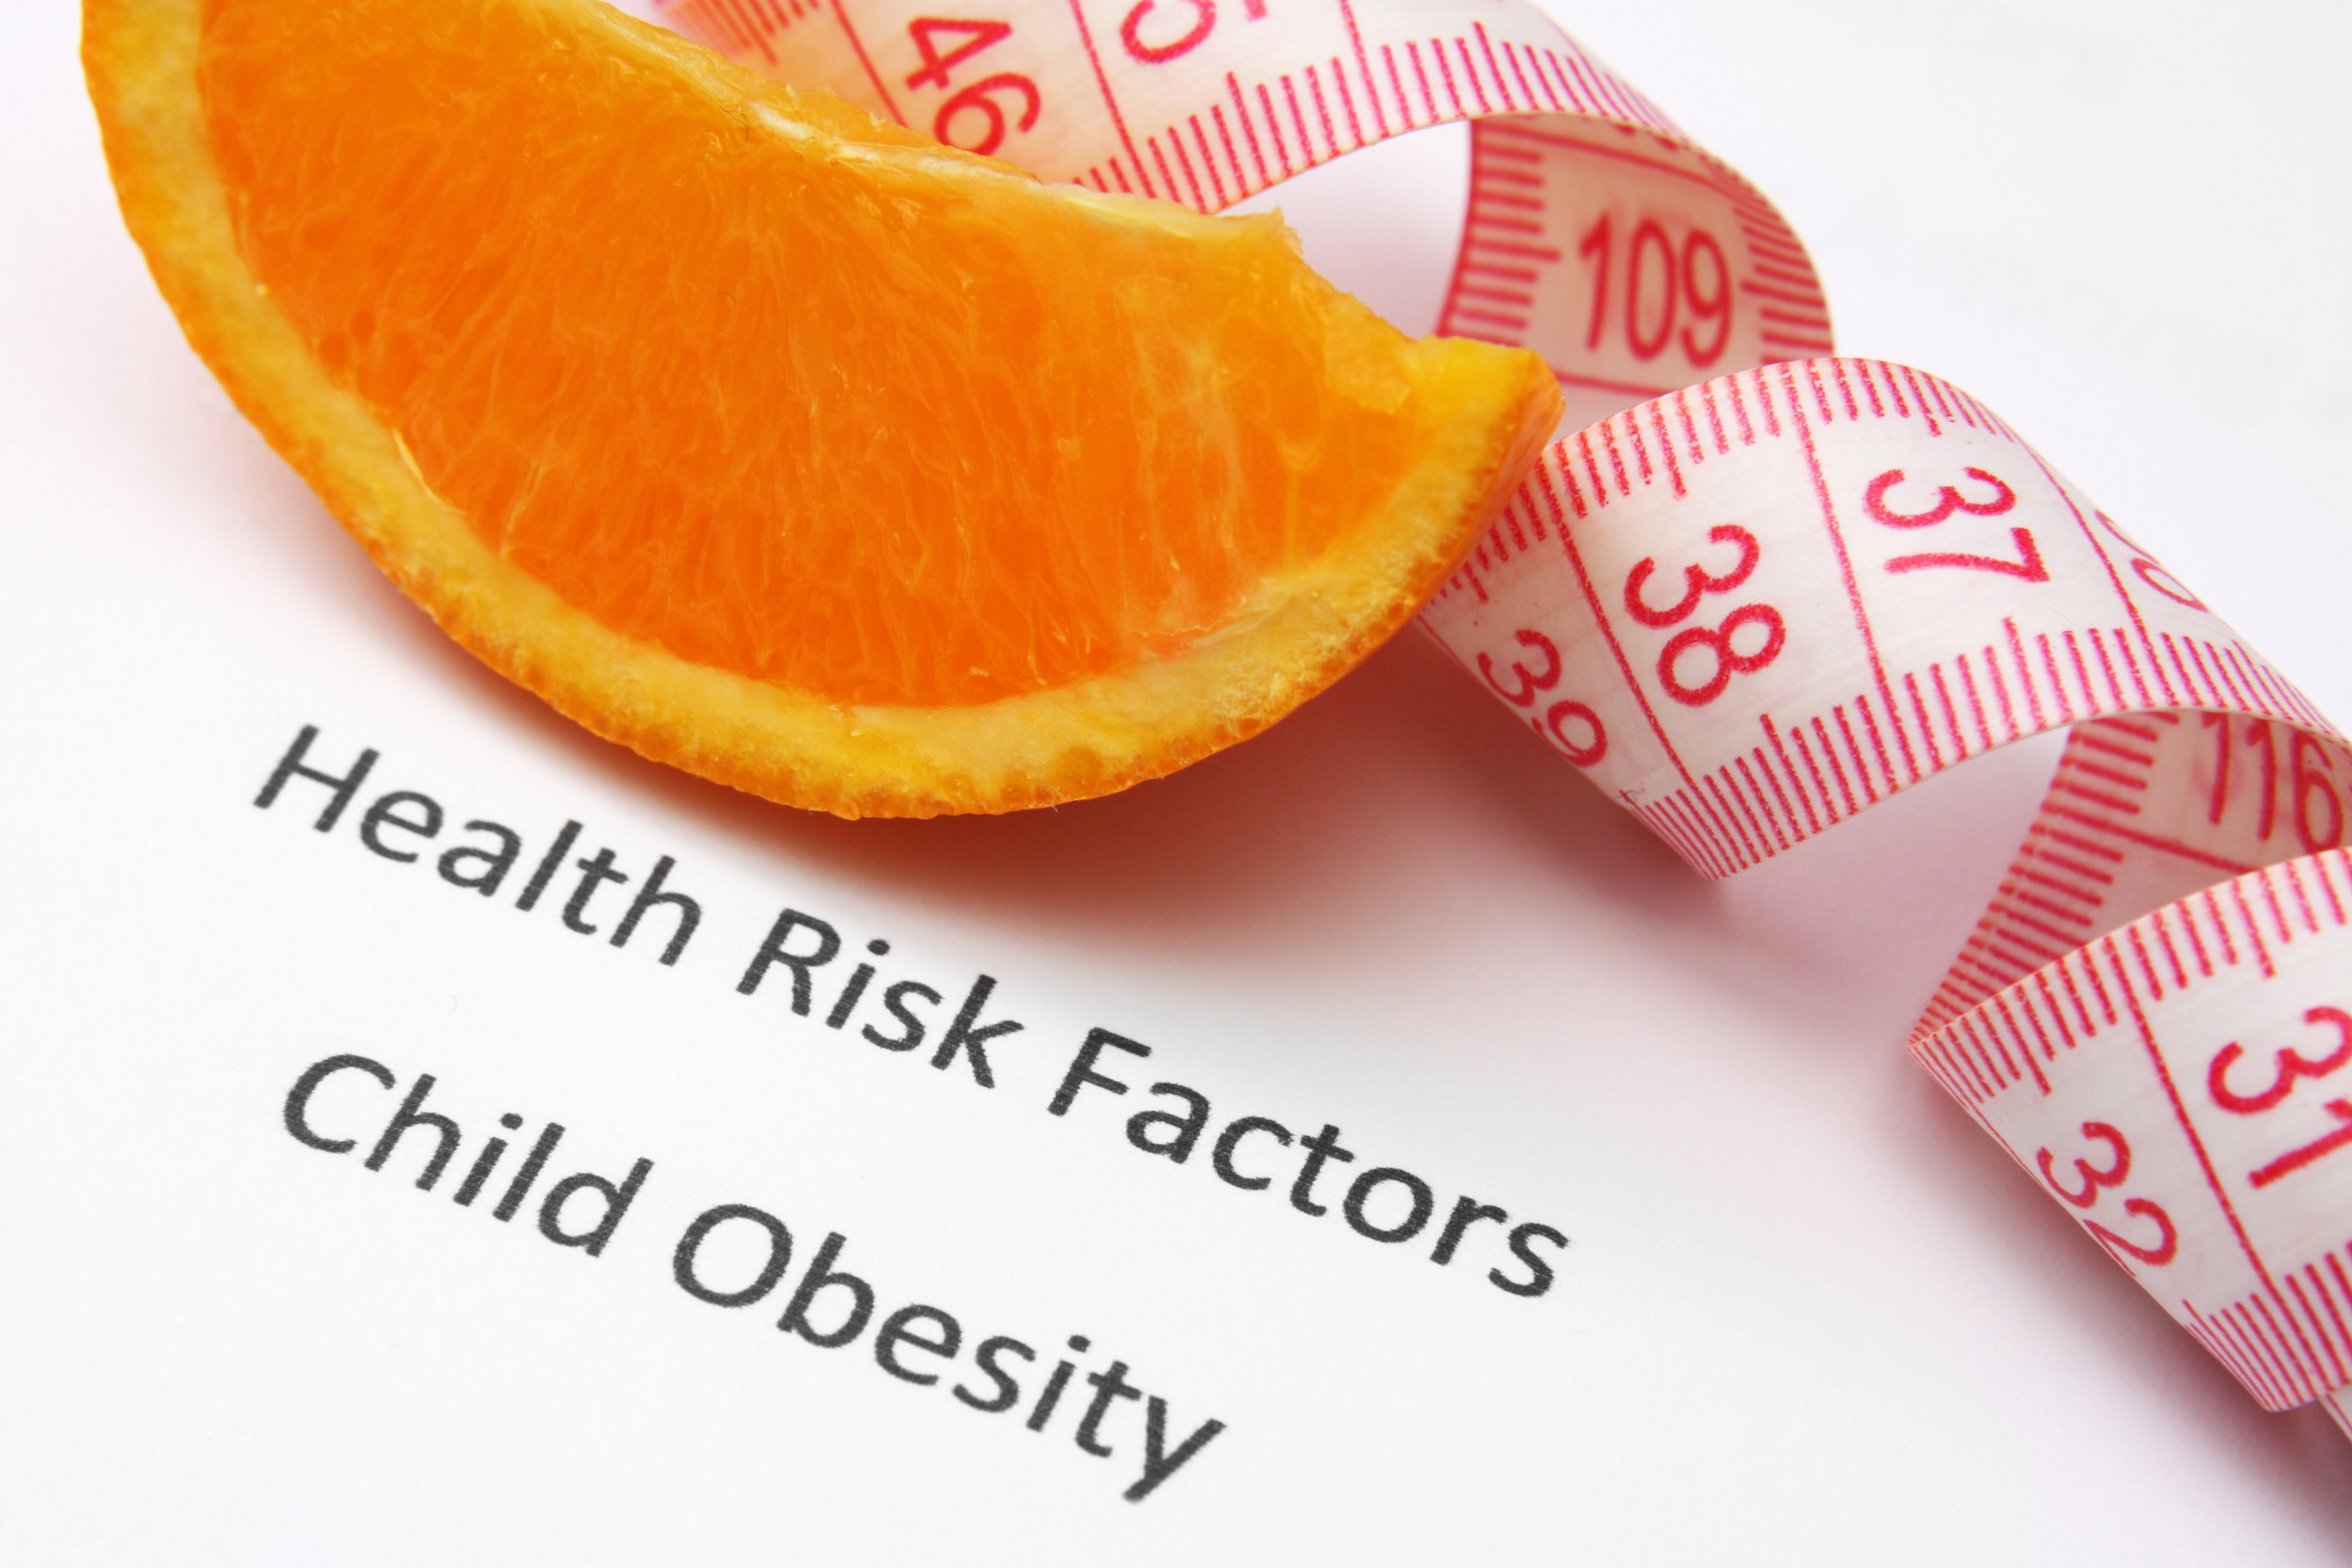 NEW STUDY EXAMINES EARLY LIFE RISK FACTORS FOR OBESITY AMONG CHILDREN WITH AUTISM SPECTRUM DISORDER